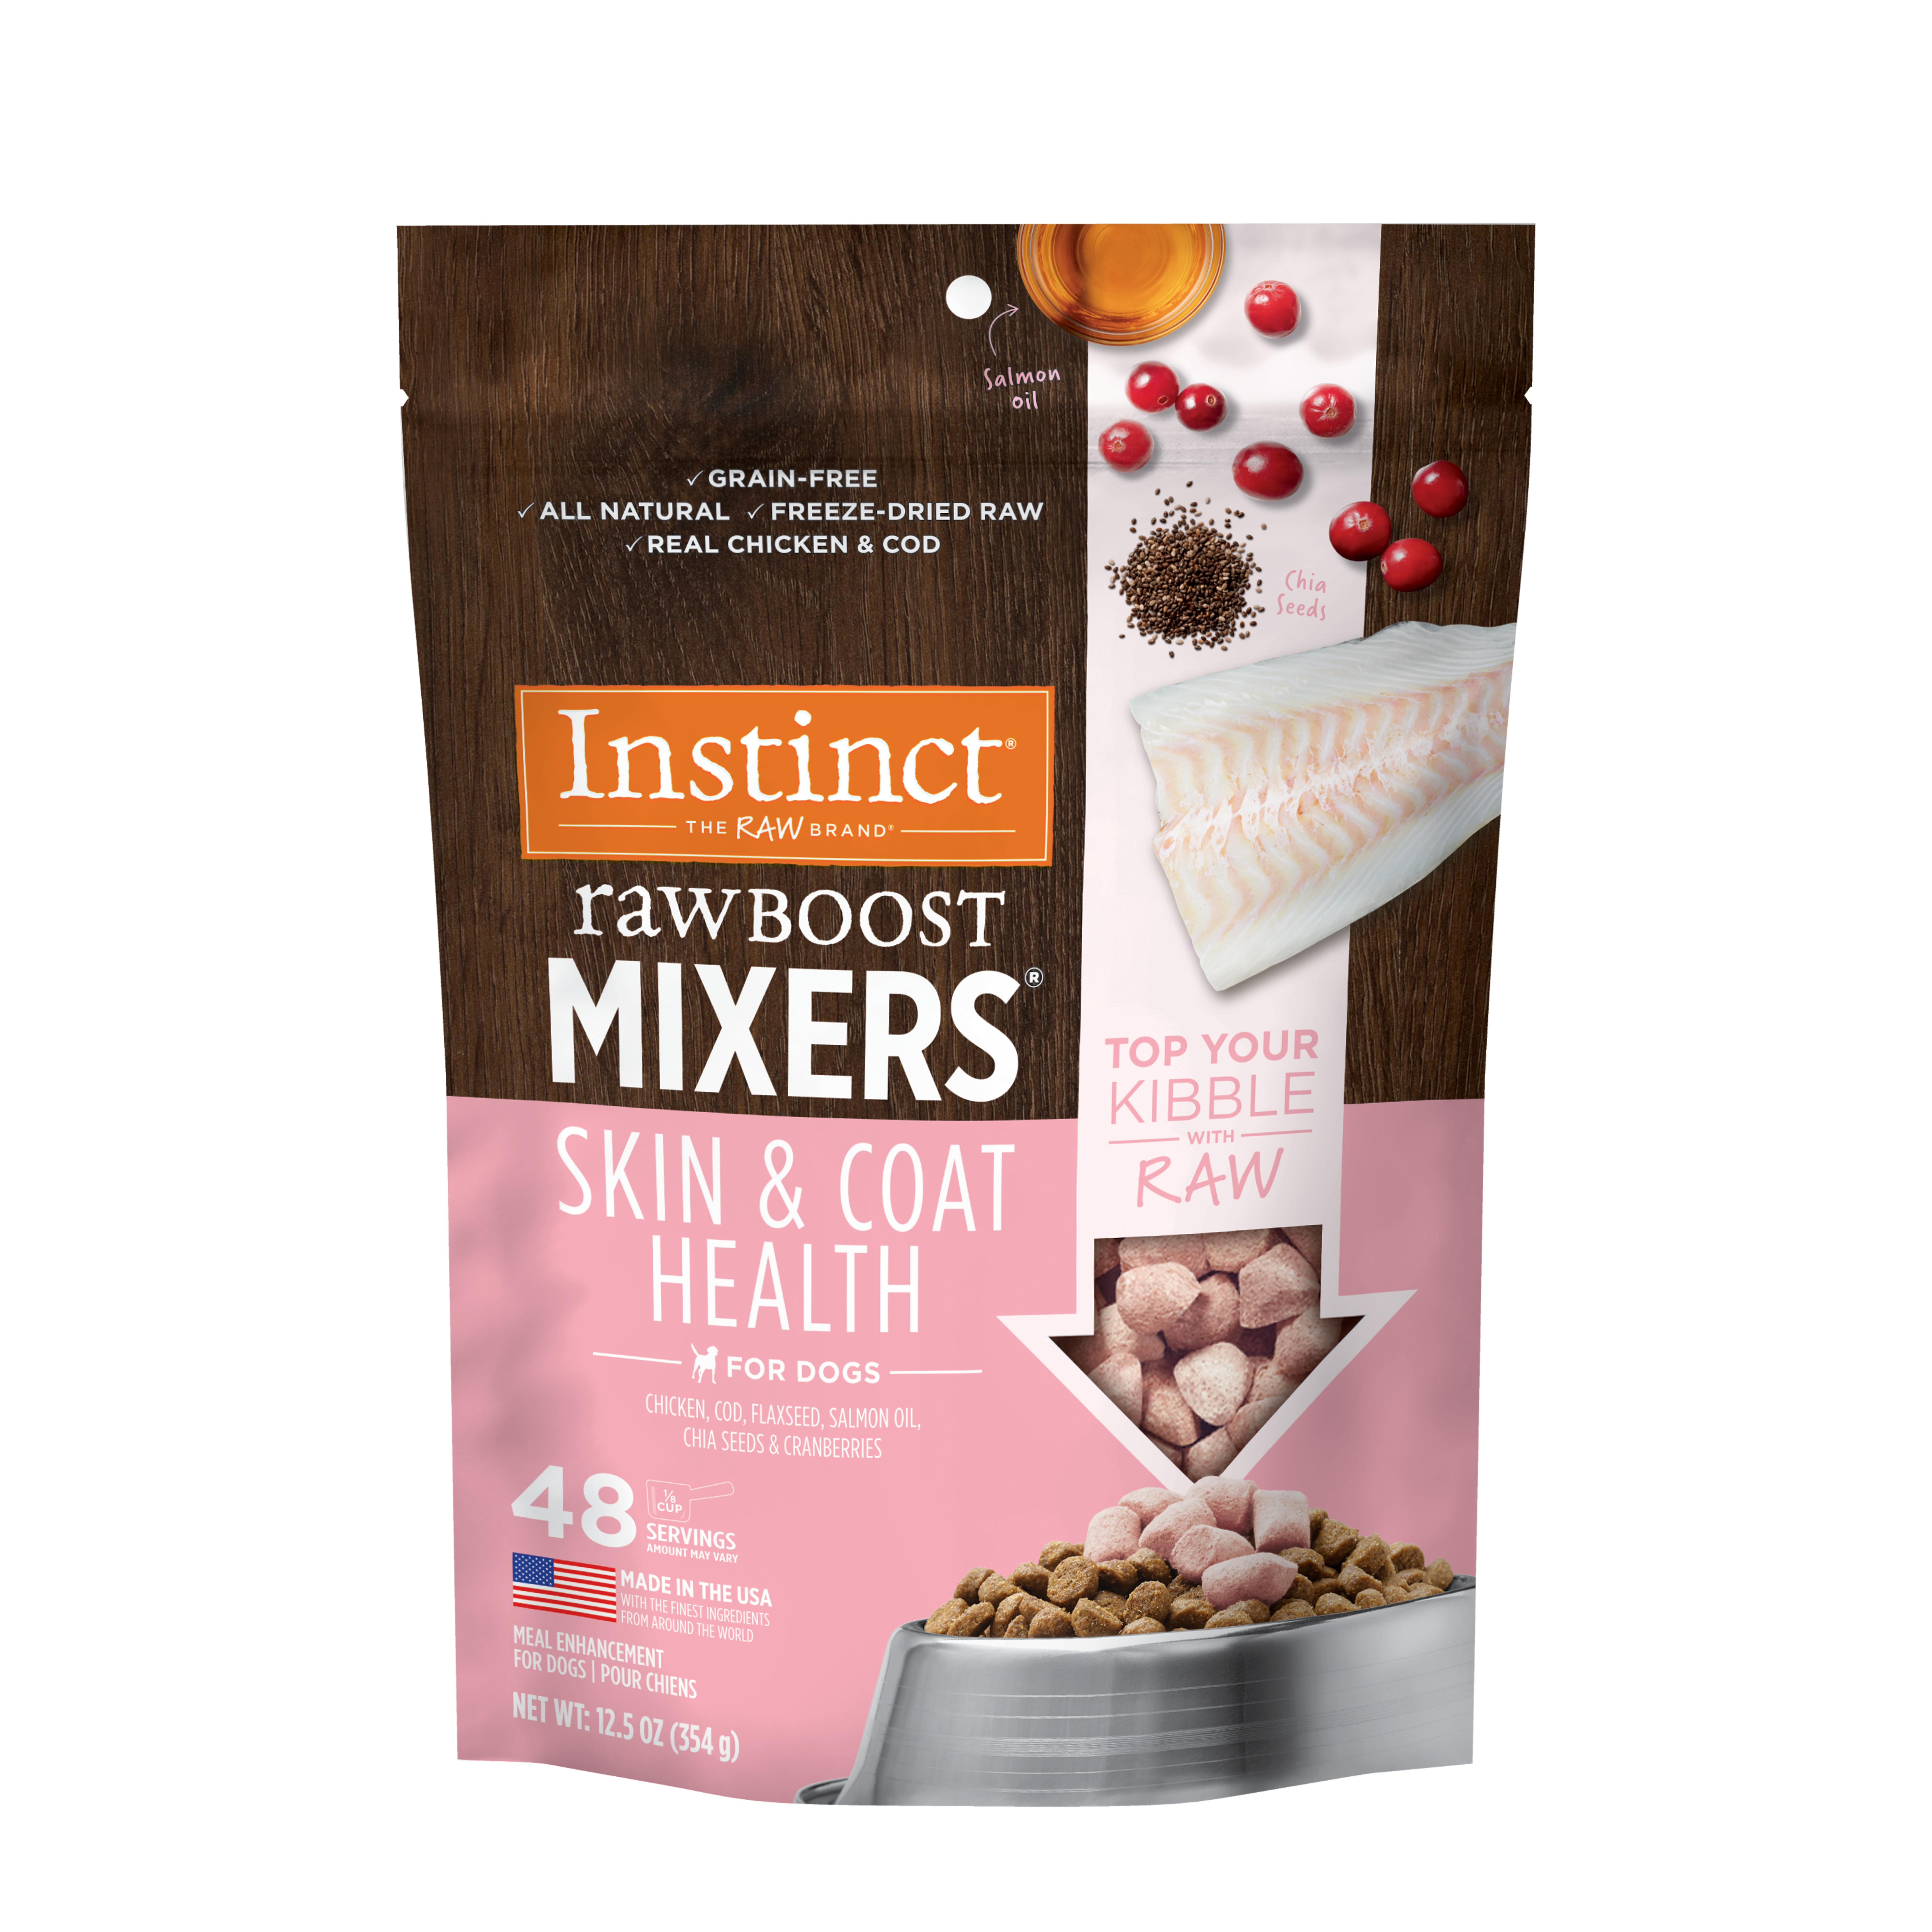 Instinct by Nature's Variety Raw Boost Mixers Skin & Coat Health Freeze-Dried Dog Food Topper, 12.5-oz